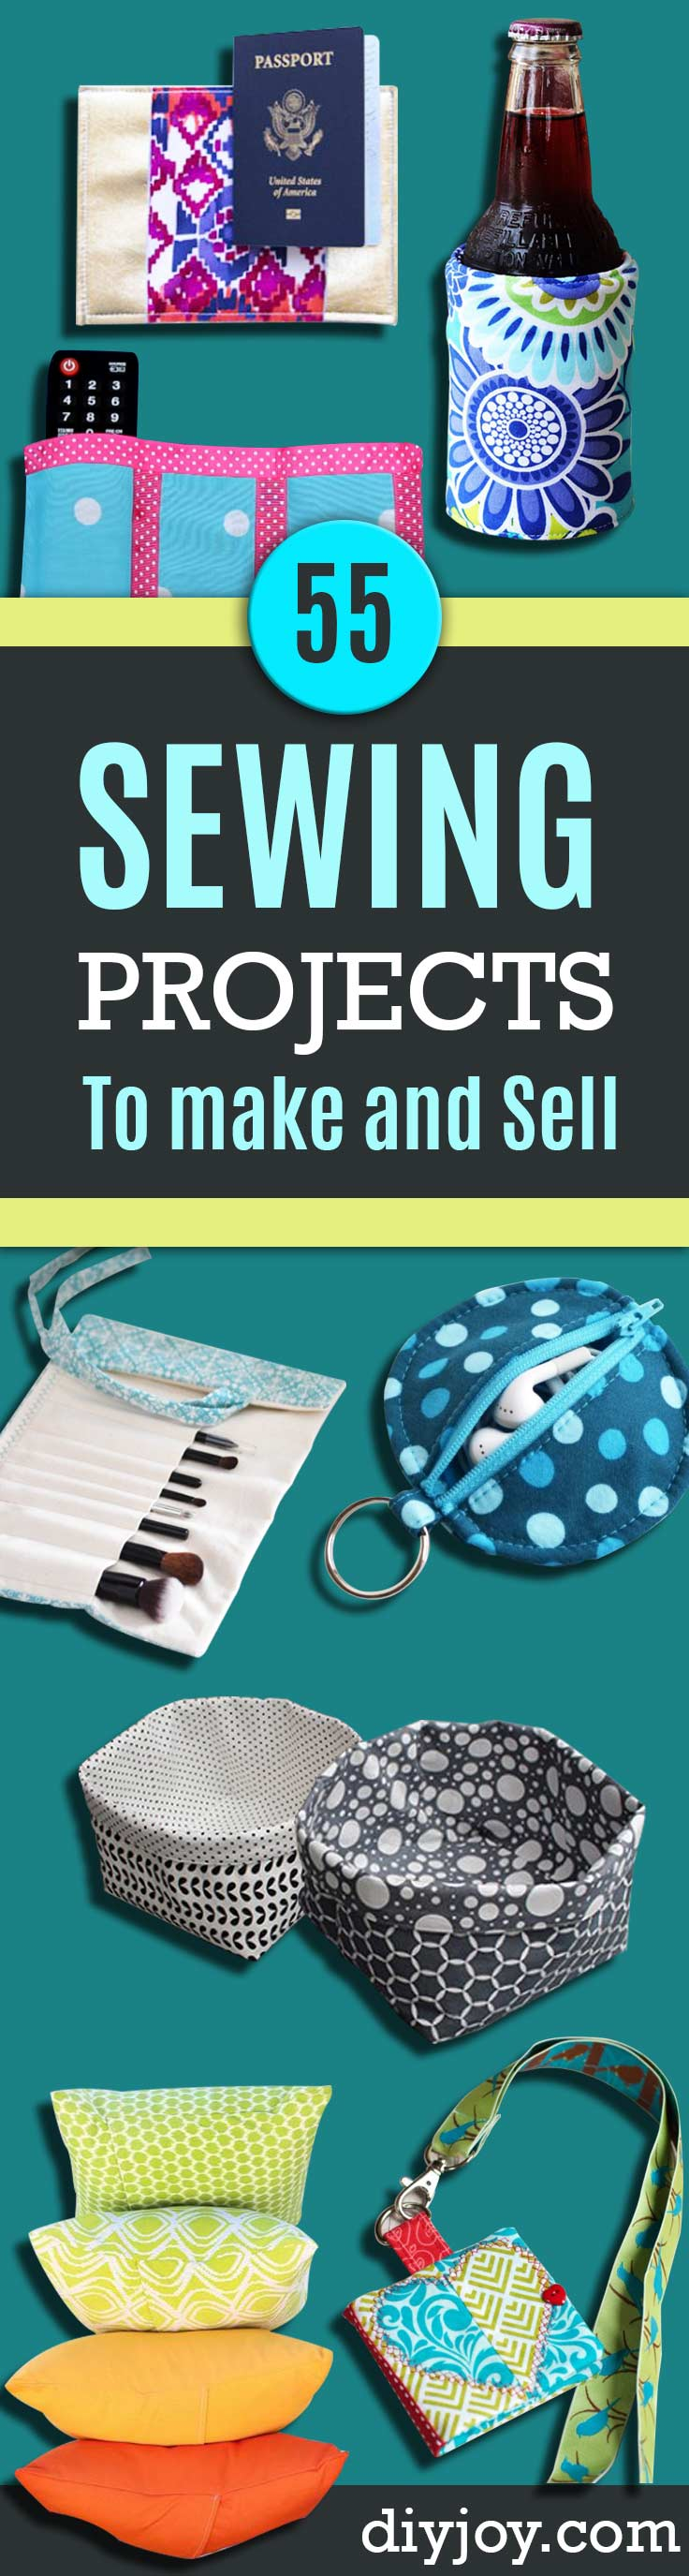 Easy Sewing Projects to Sell - DIY Sewing Ideas for Home Decor, DIY Gifts to Make and Sell - Free Patterns and Instructions for Sewing Ideas